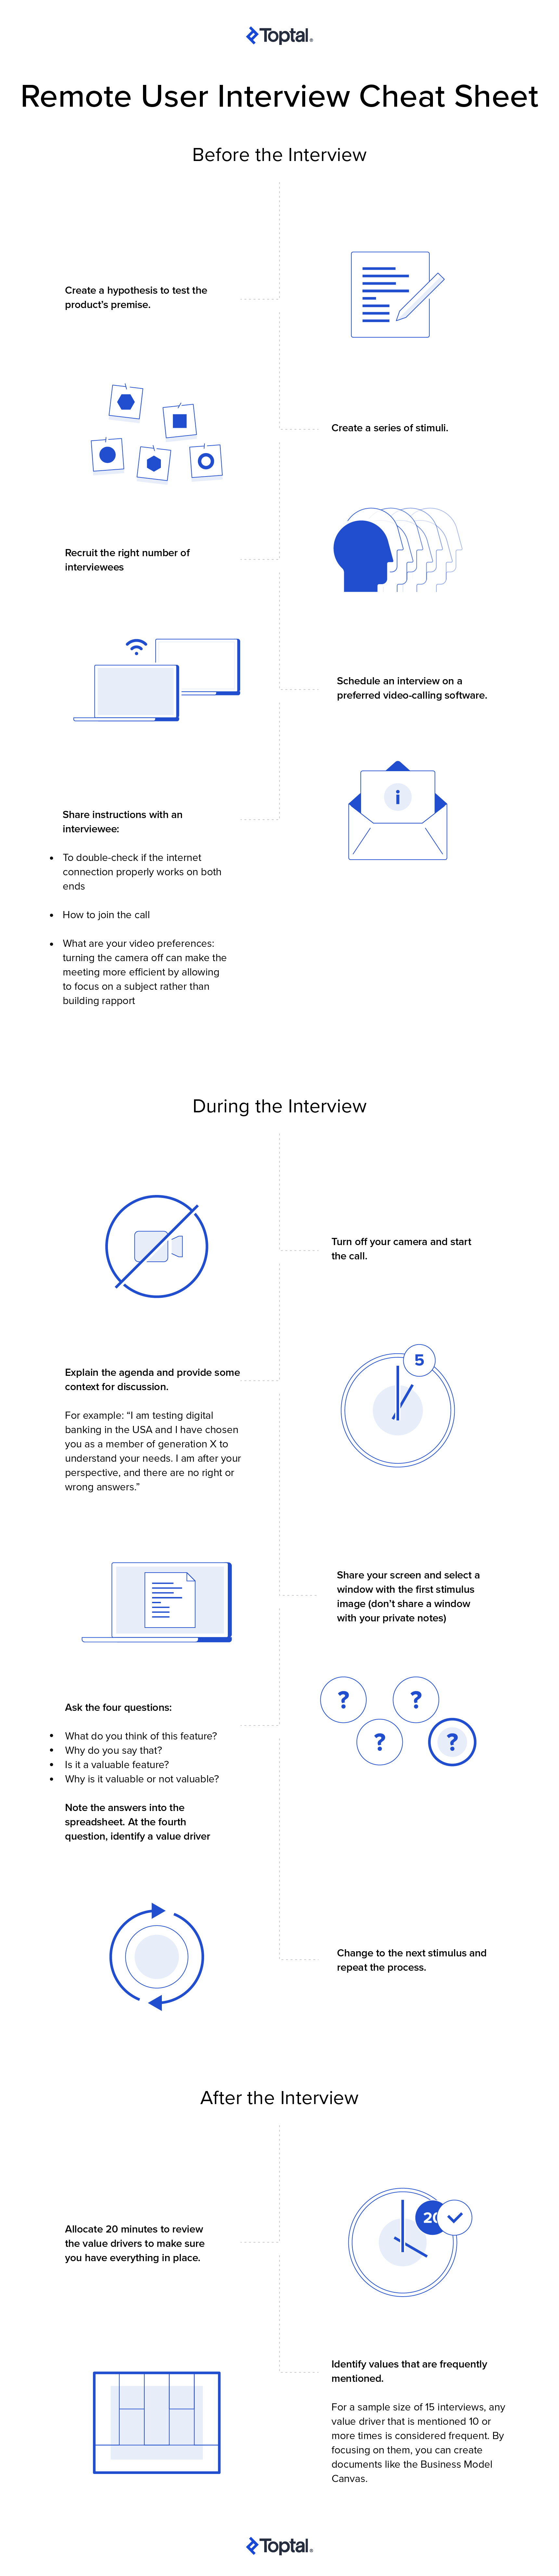 Remote user interview cheat sheet Infographic